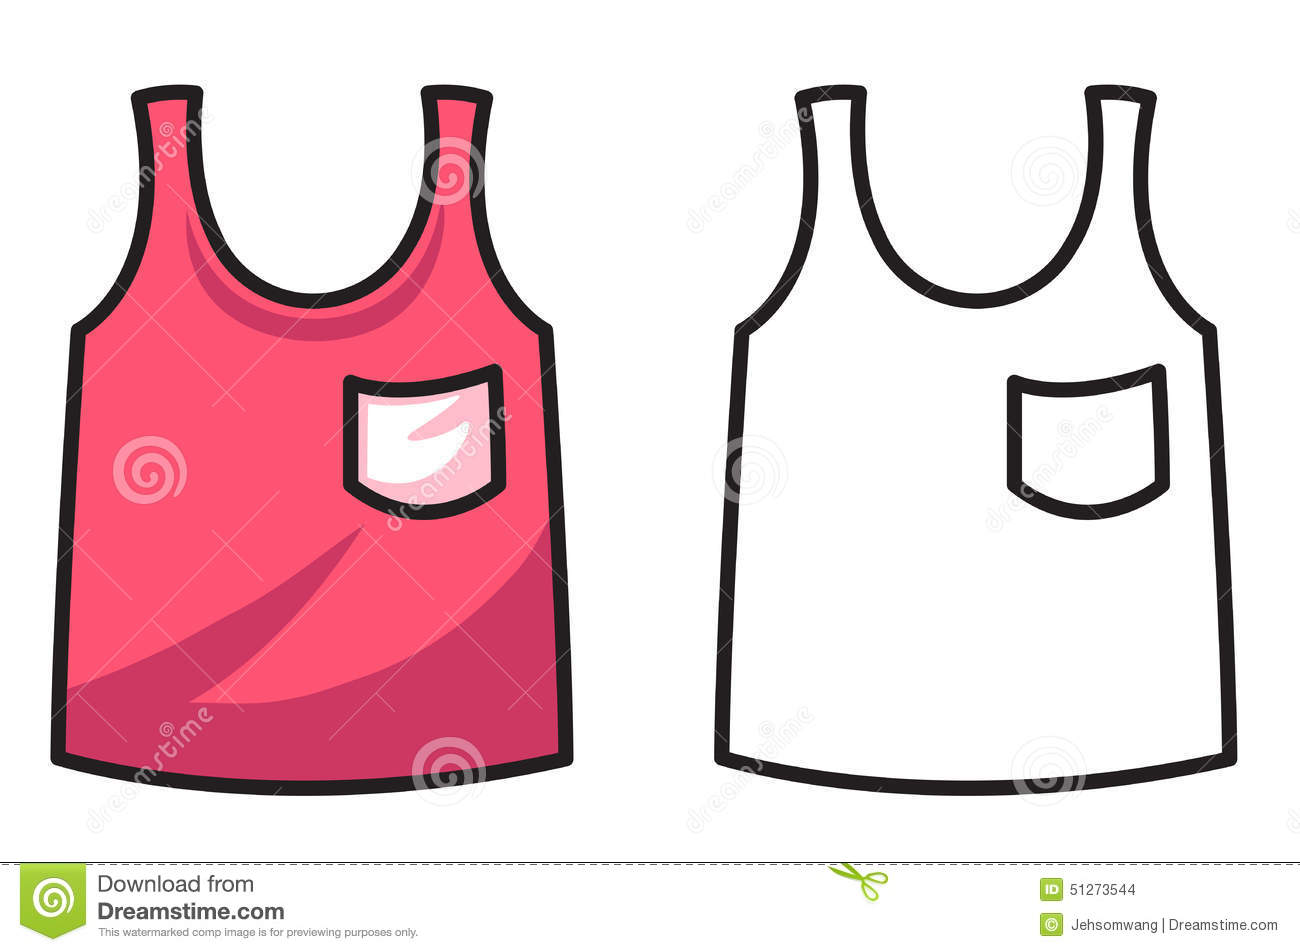 colorful and black and white vest for coloring book stock vector rh dreamstime com Van Clip Art Black and White Vulture Clip Art Black and White